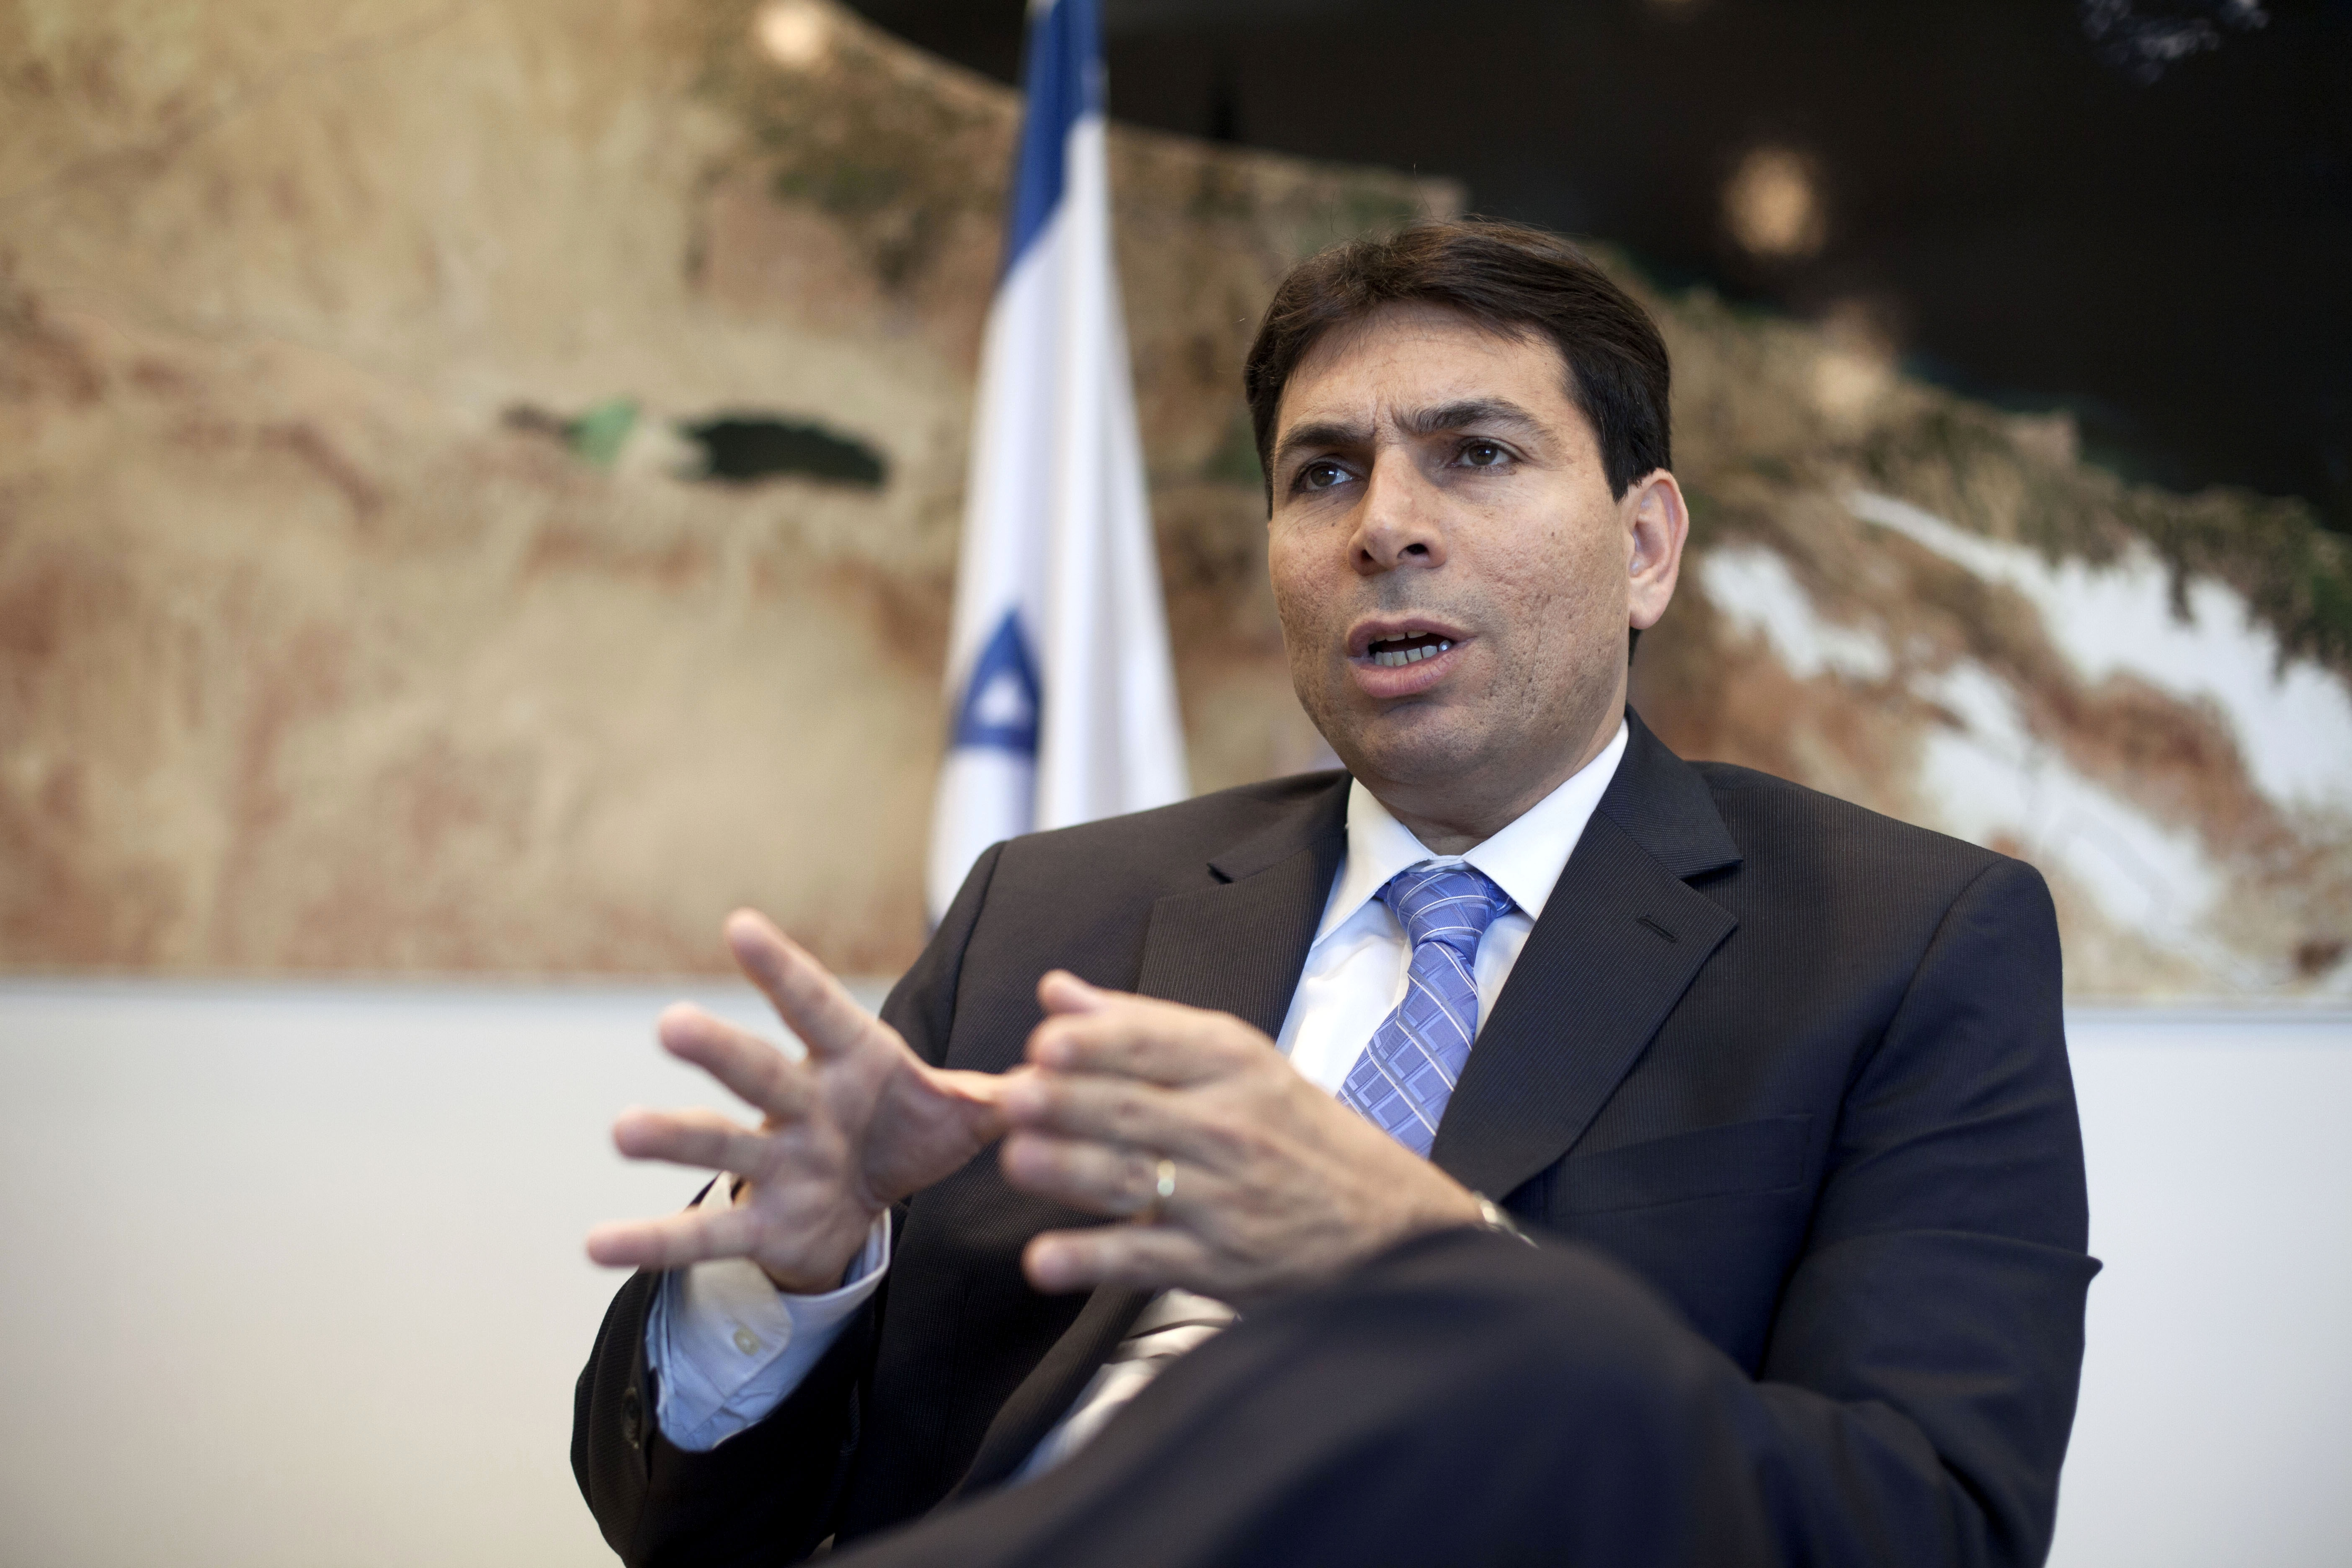 In this Thursday, June 27, 2013 file photo, Israeli Deputy Minister of Defense Dani Danon speaks during an interview to the Associated Press in his office in Tel Aviv, Israel. Israeli Prime Minister Benjamin Netanyahu named on Friday, Aug. 14, 2015 Danon to the sensitive post of ambassador to the United Nations. Photo: AP